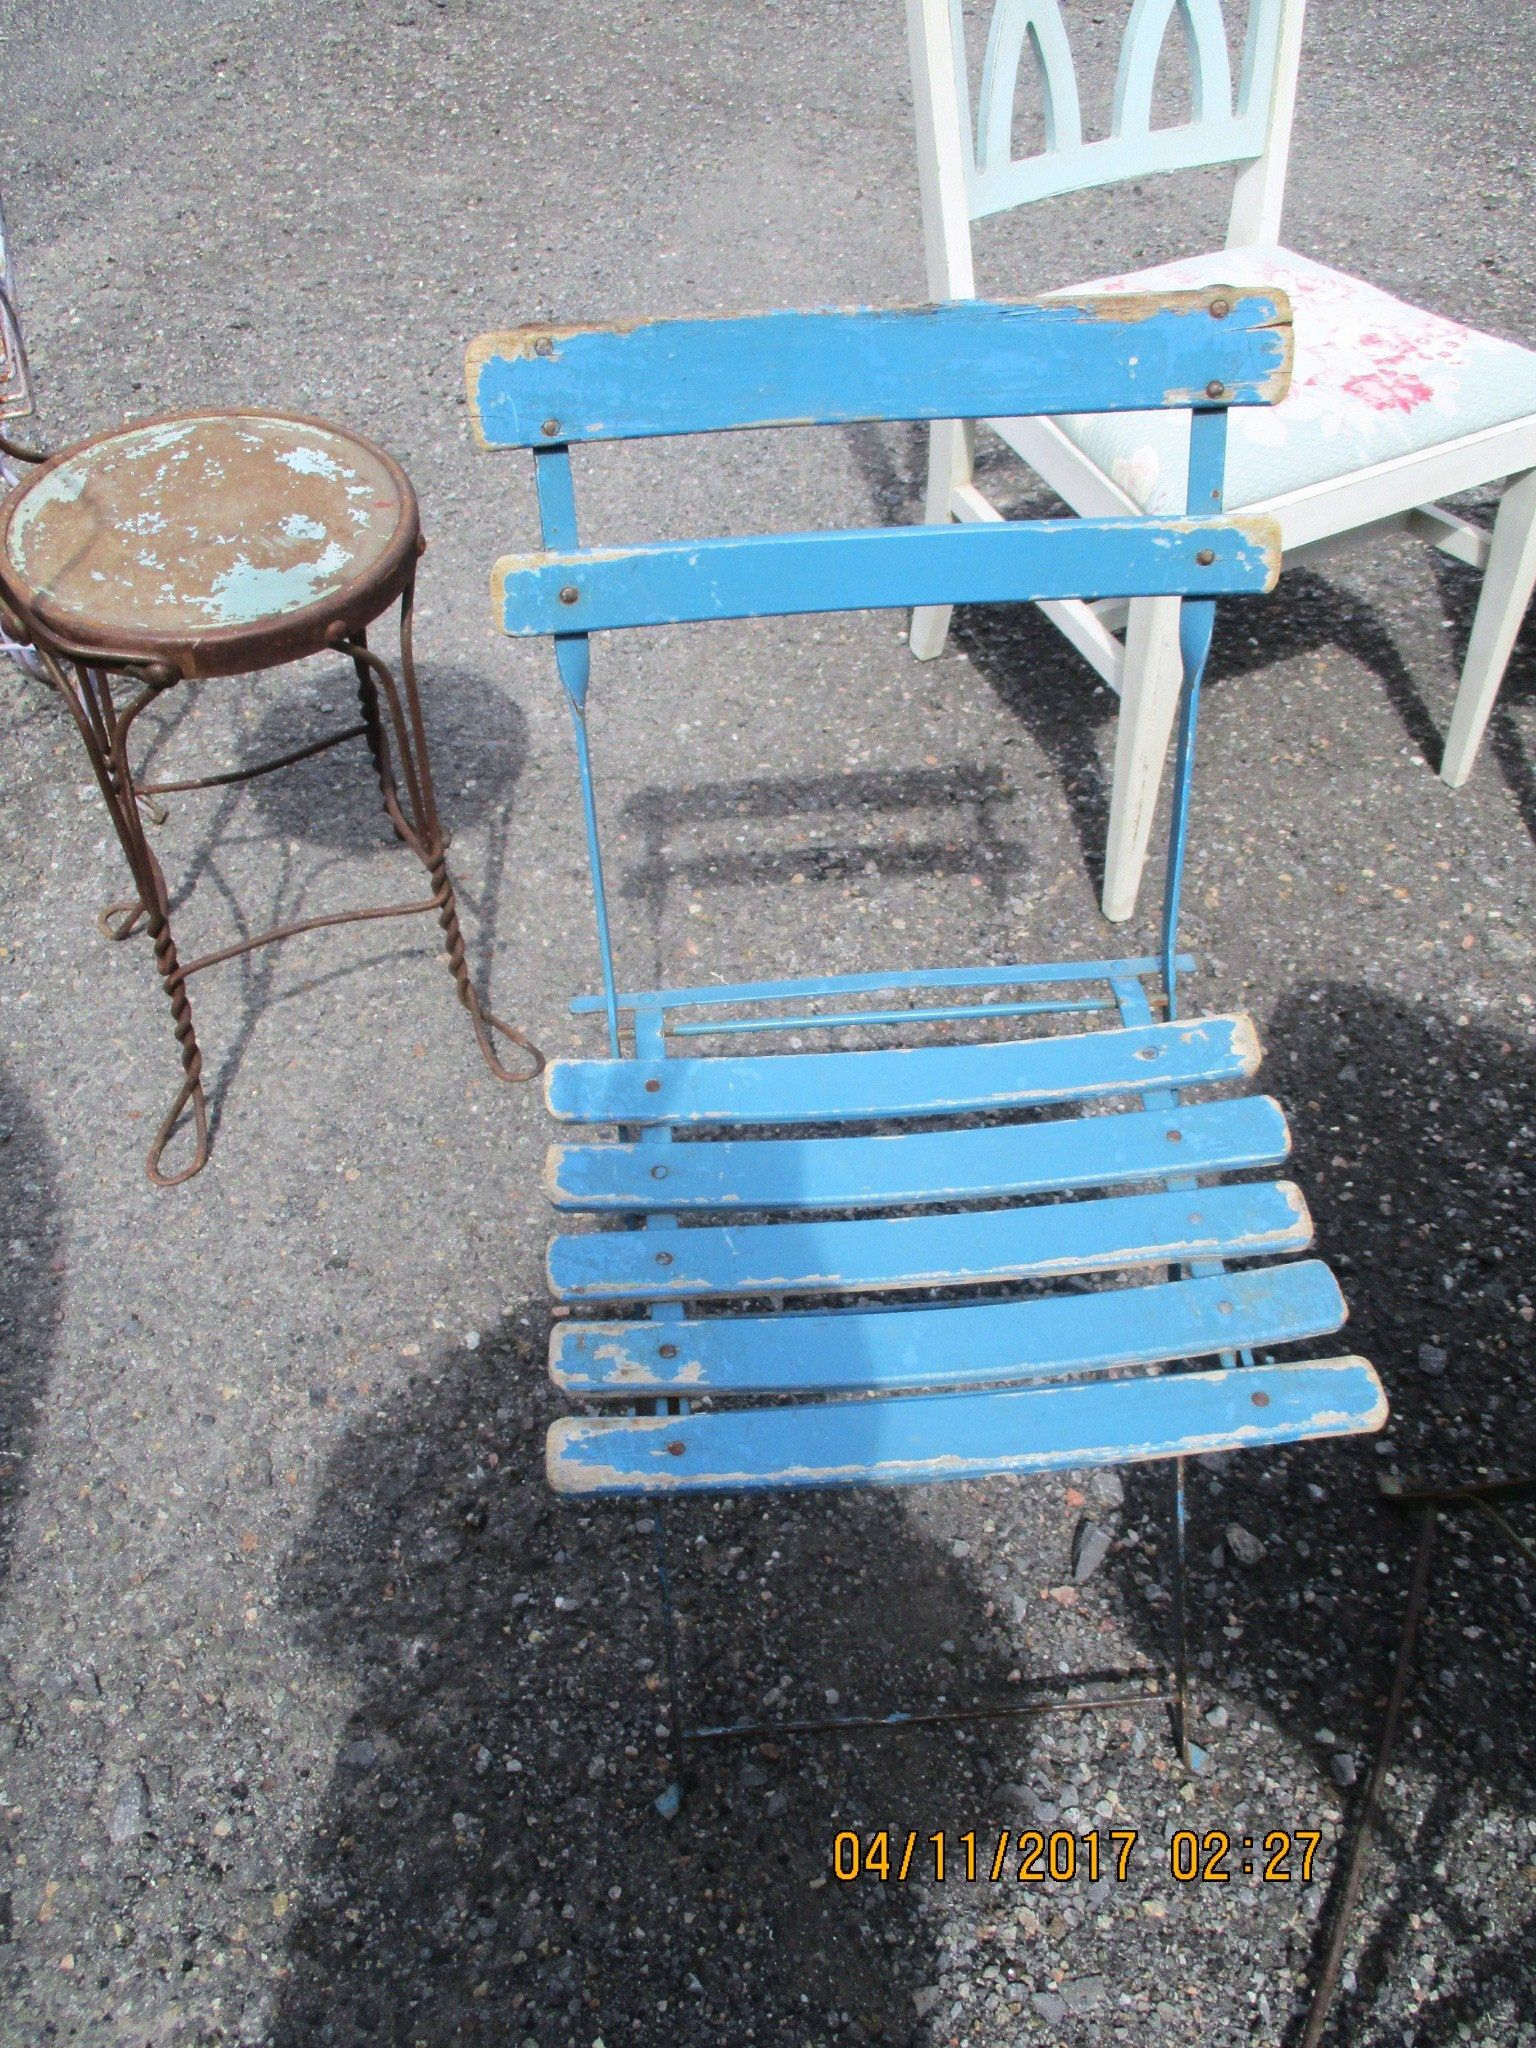 Vintage French Bistro Folding Chair Garden Chair Wood Slats Metal Frame Shabby Chic Cafe Rare By Simplycottagechic On Etsy Shabby Chic Cafe Folding Chair Shabby Chic Frames